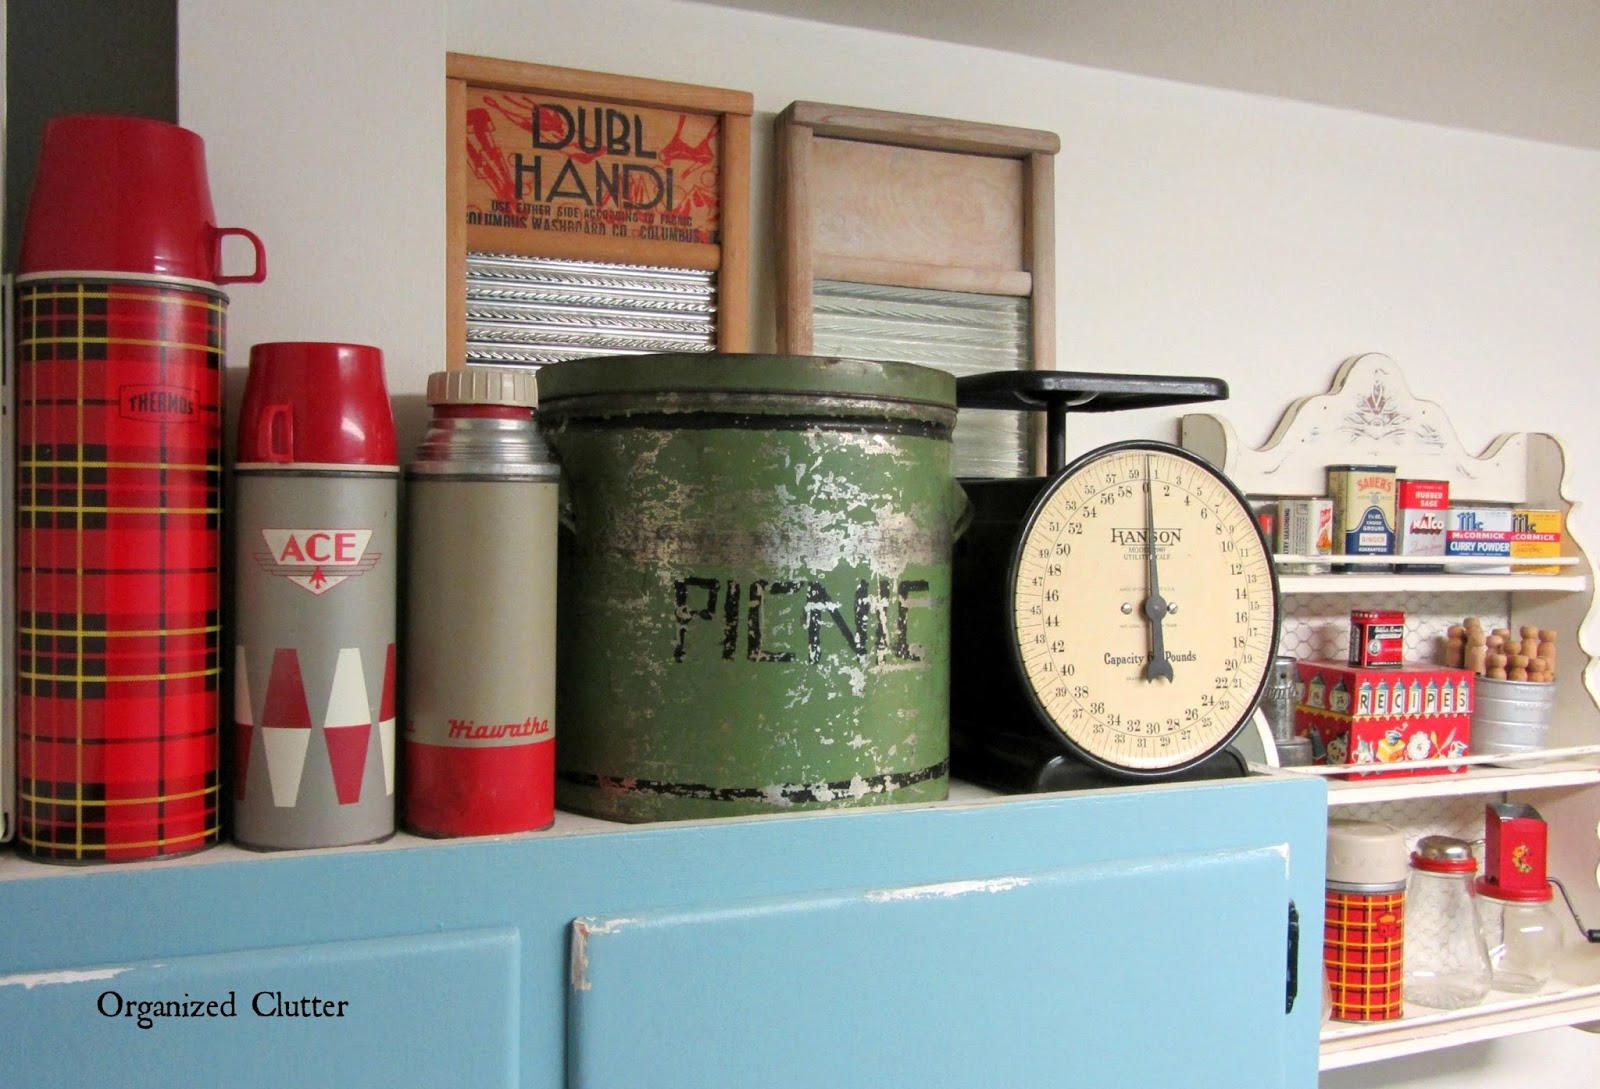 Vintage Decor in the Laundry Room www.organizedclutterqueen.blogspot.com